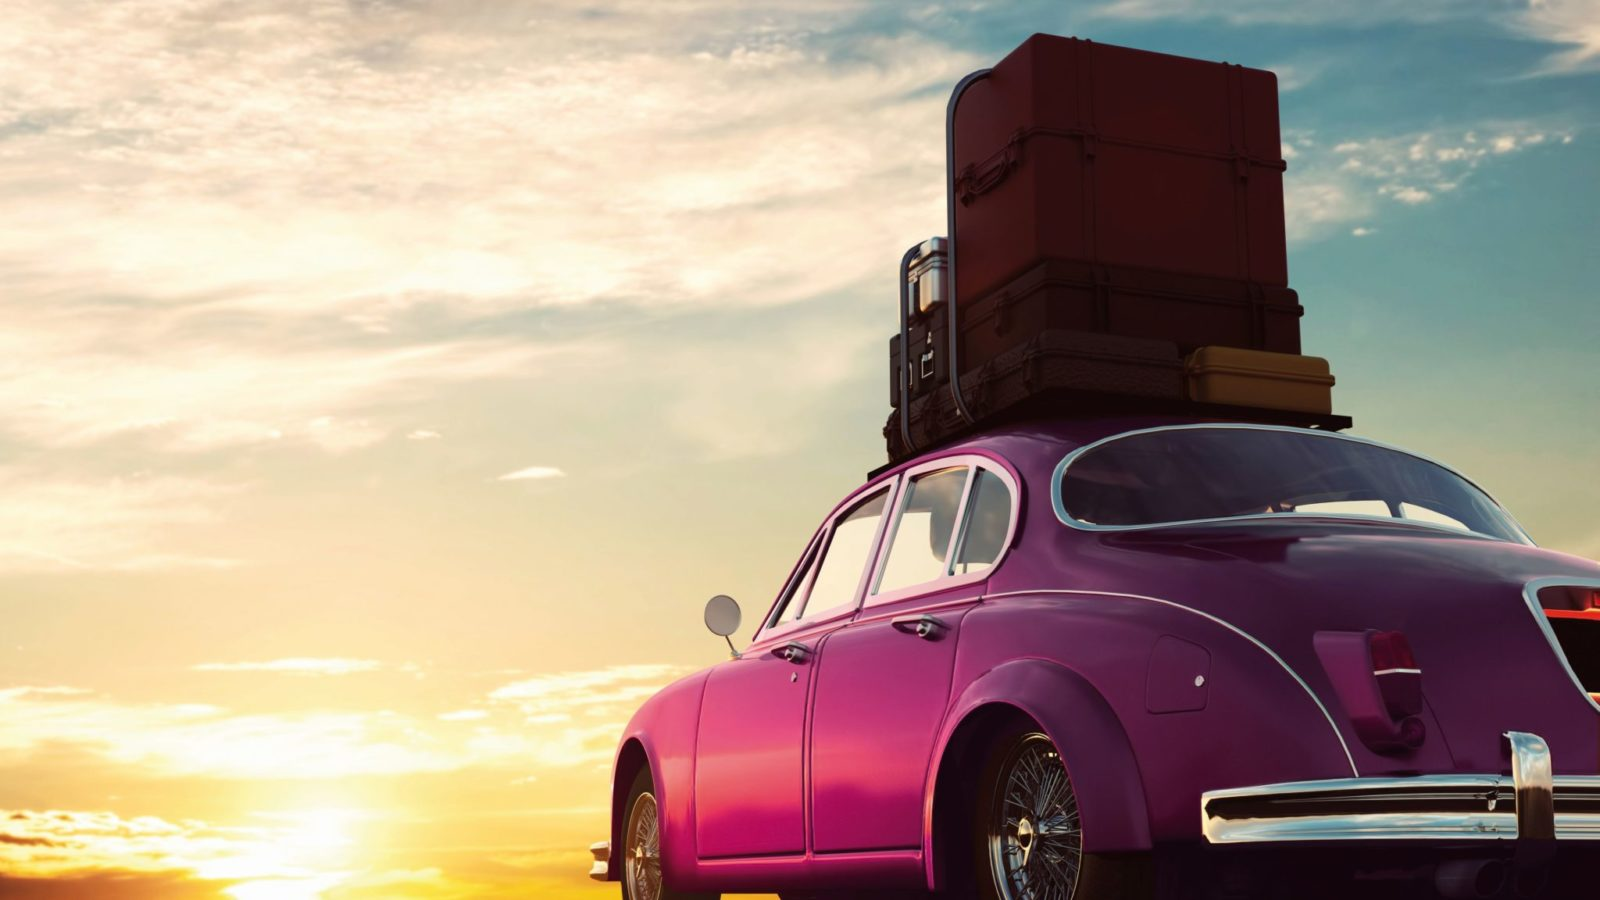 Retro red car with luggage on roof rack at sunset. Travel, vacat